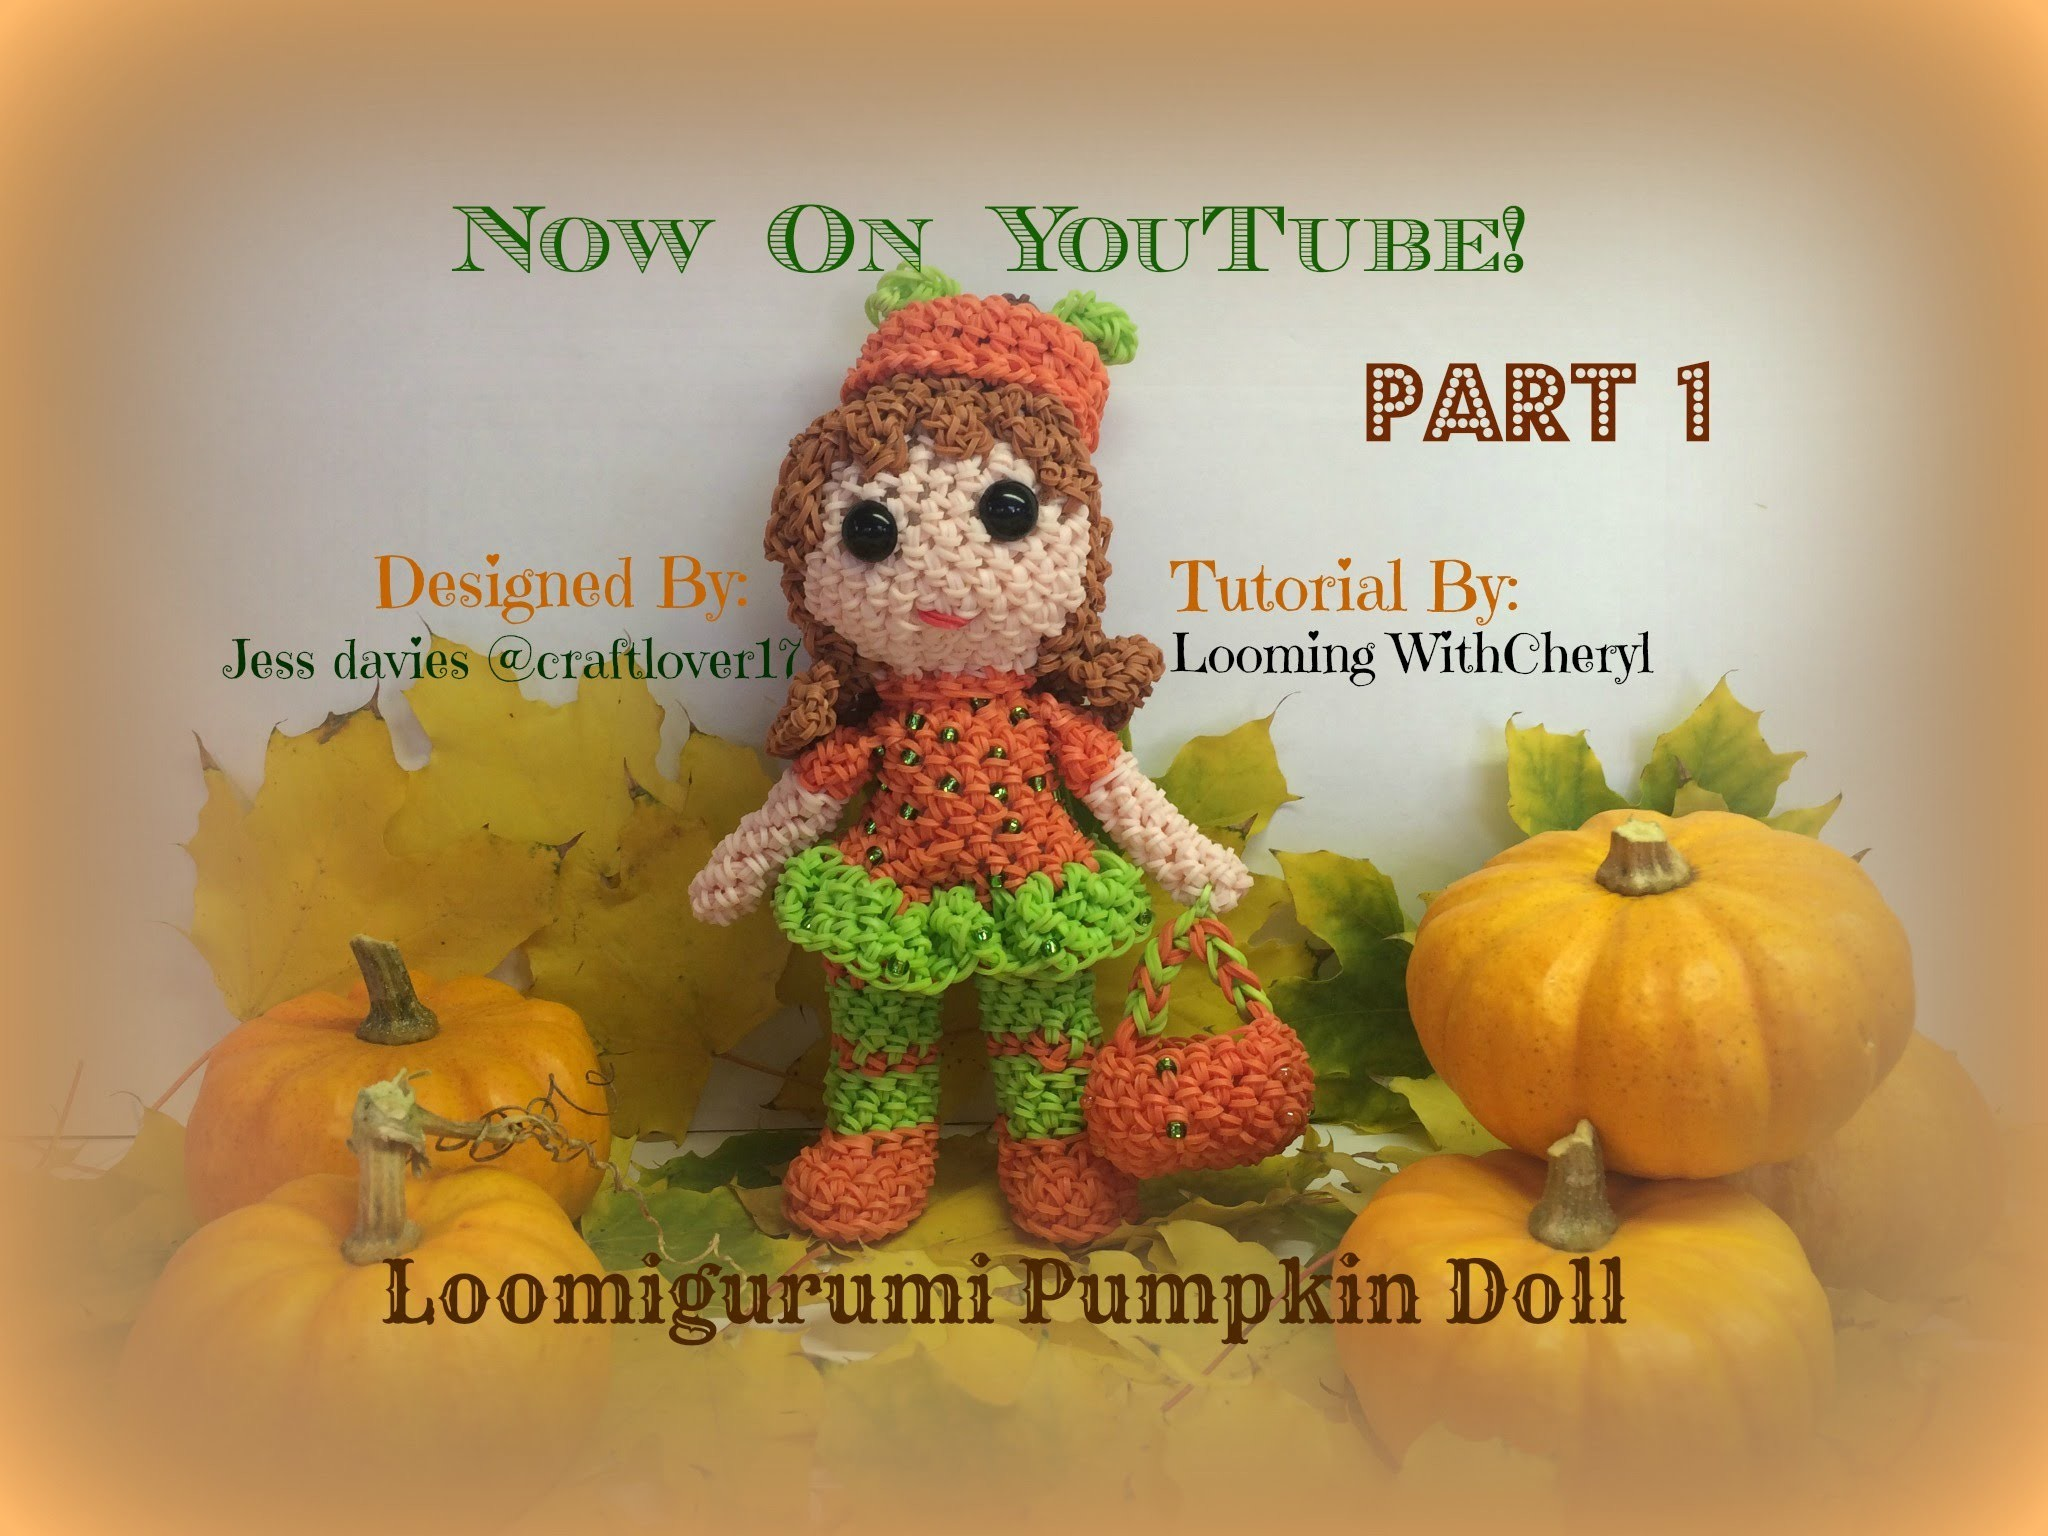 Rainbow Loom Pumpkin Doll Part 1 of 3 - Loomigurumi. Amigurumi Hook Only